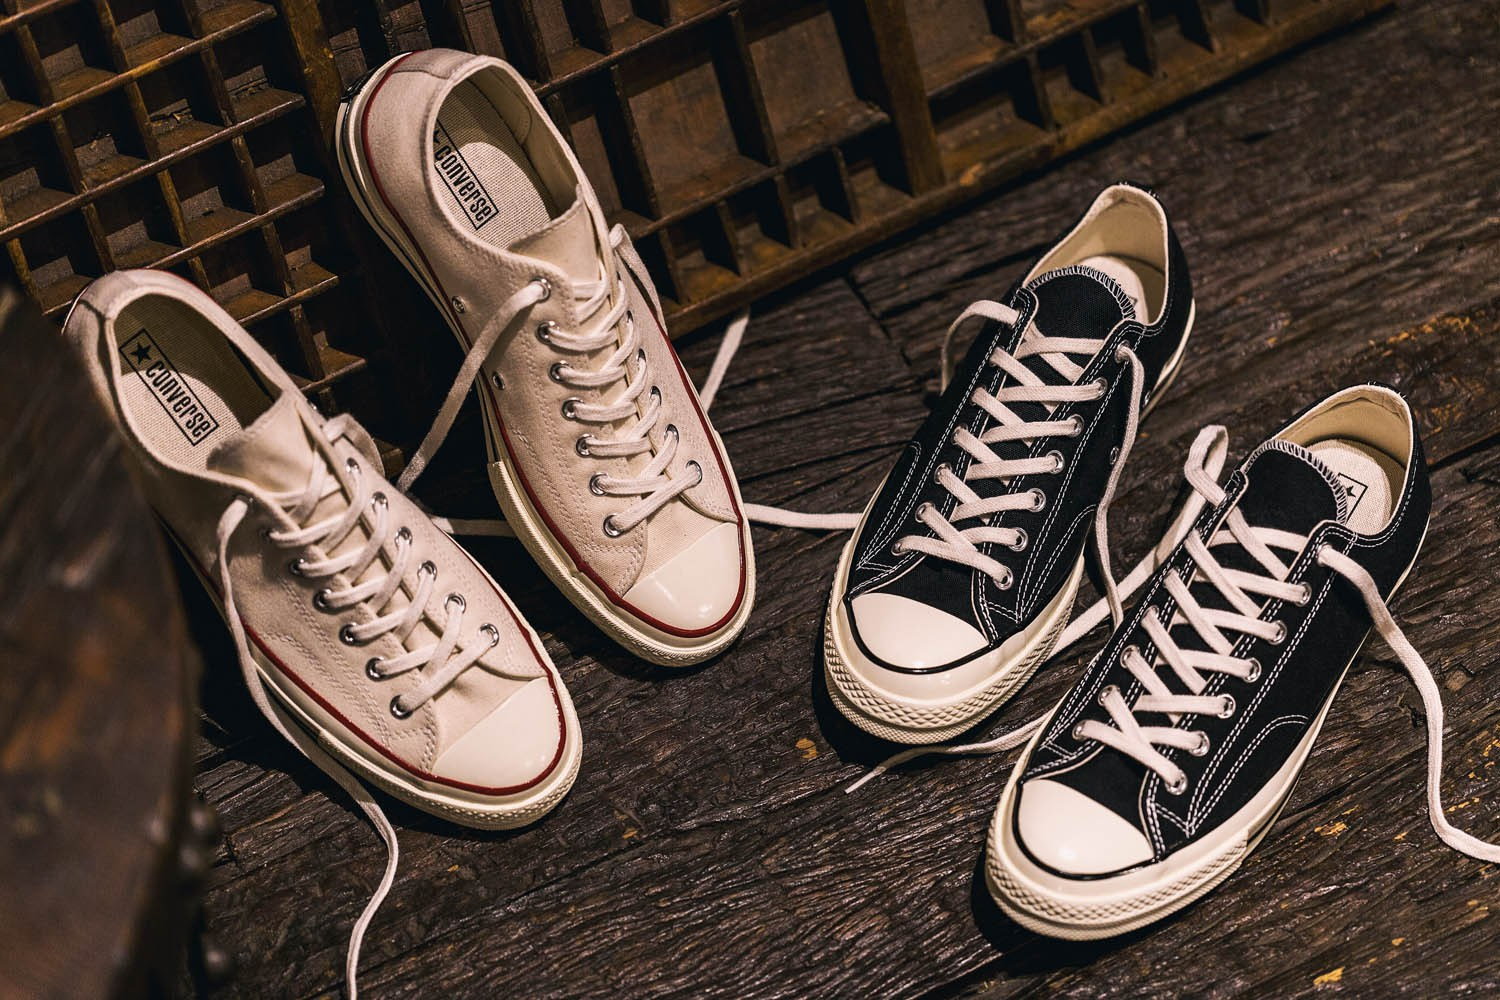 converse-shows-its-colors-with-its-latest-chuck-taylor-all-star-70s-release-22